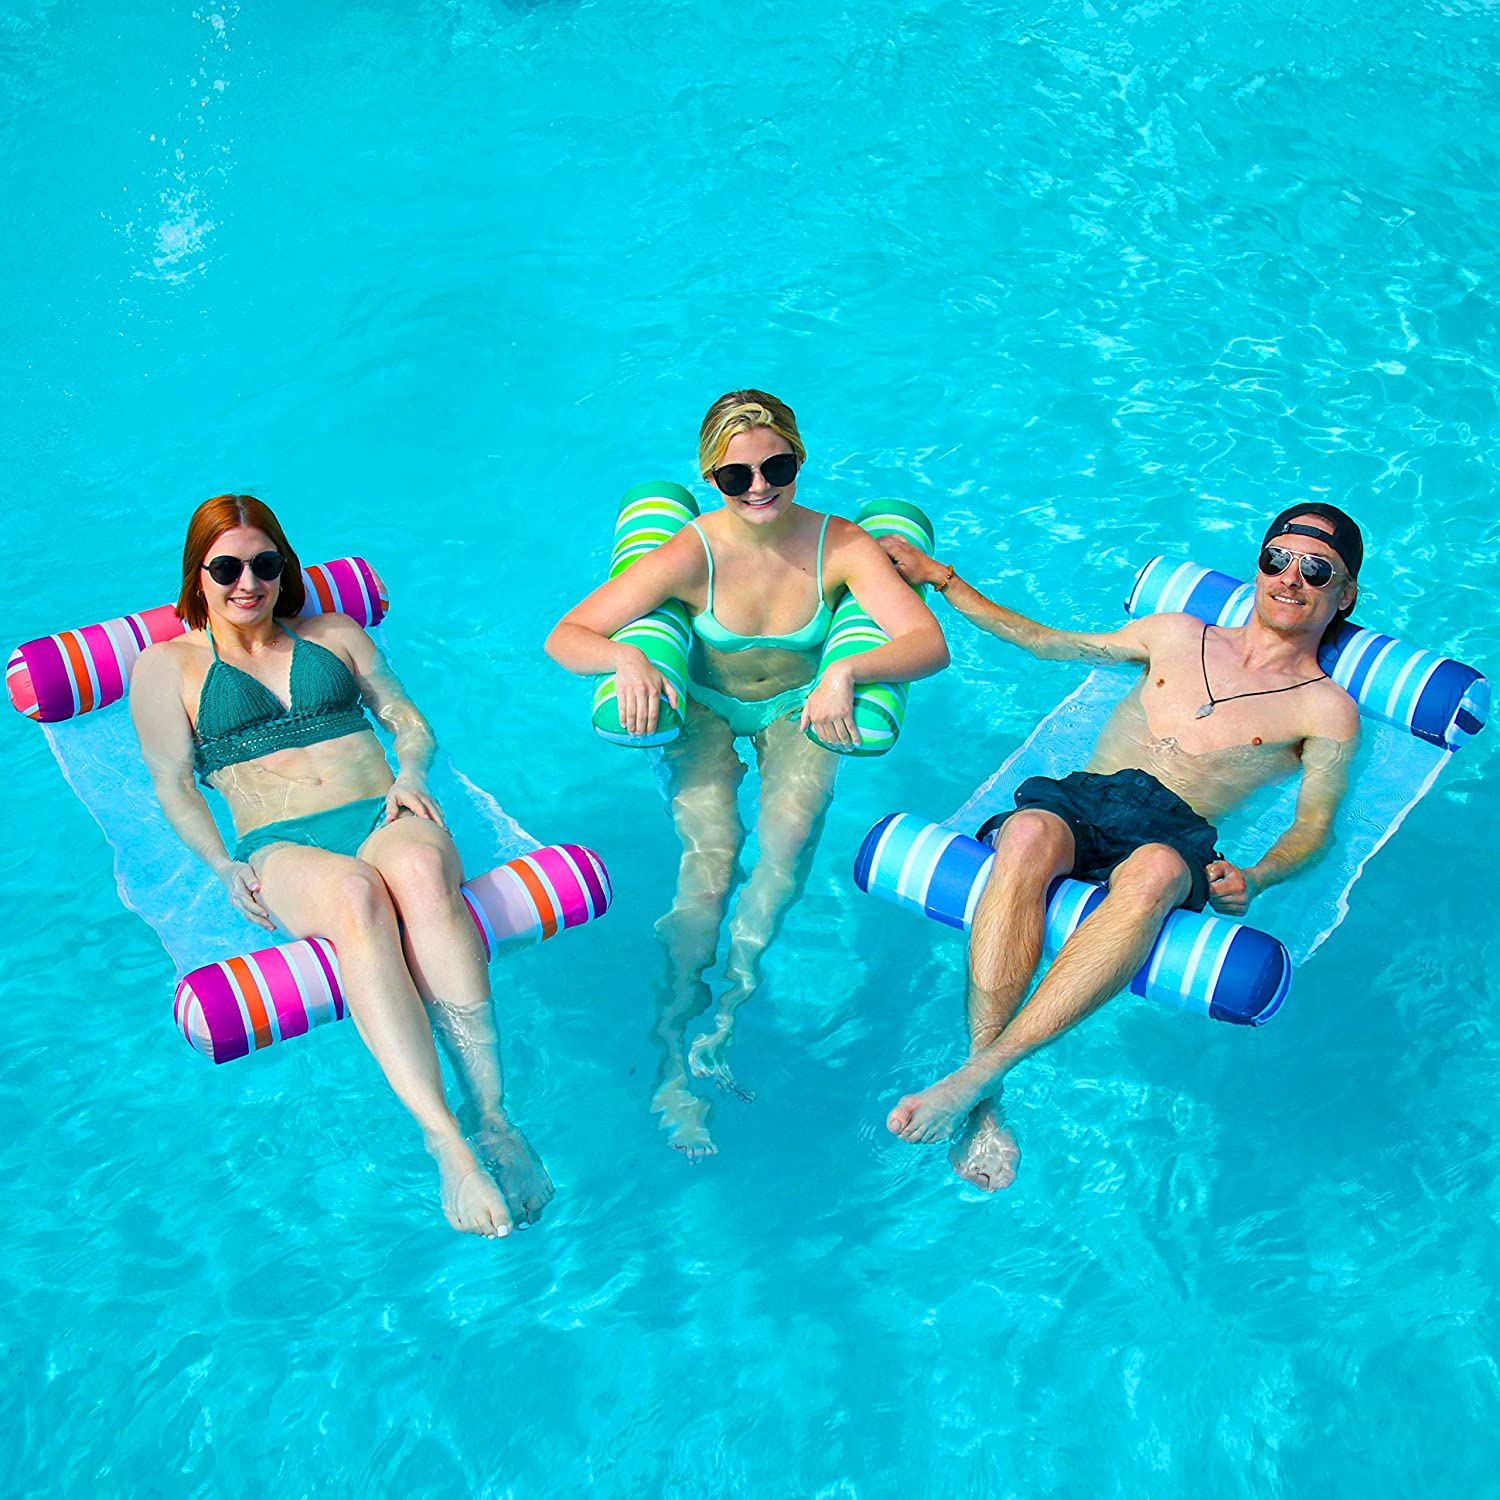 Sloosh 3 Pack Inflatable Pool Float Hammock, Water Hammock Lounges, Multi-Purpose Swimming Pool Accessories (Saddle, Lounge Chair, Hammock, Drifter) for Pool, Lake, Outdoor, Beach : Toys & Games